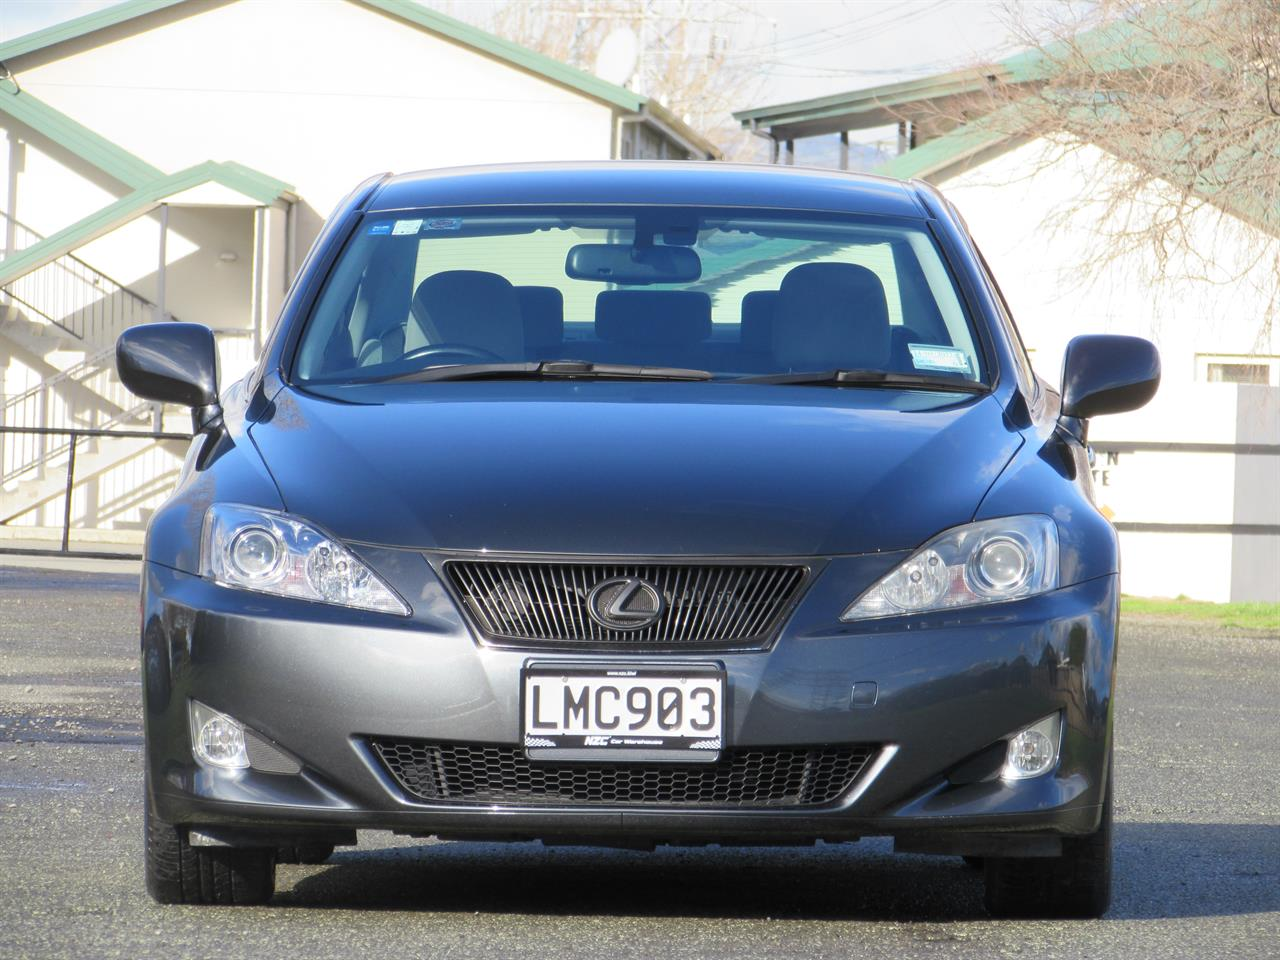 2006 Lexus IS250 only $45 weekly